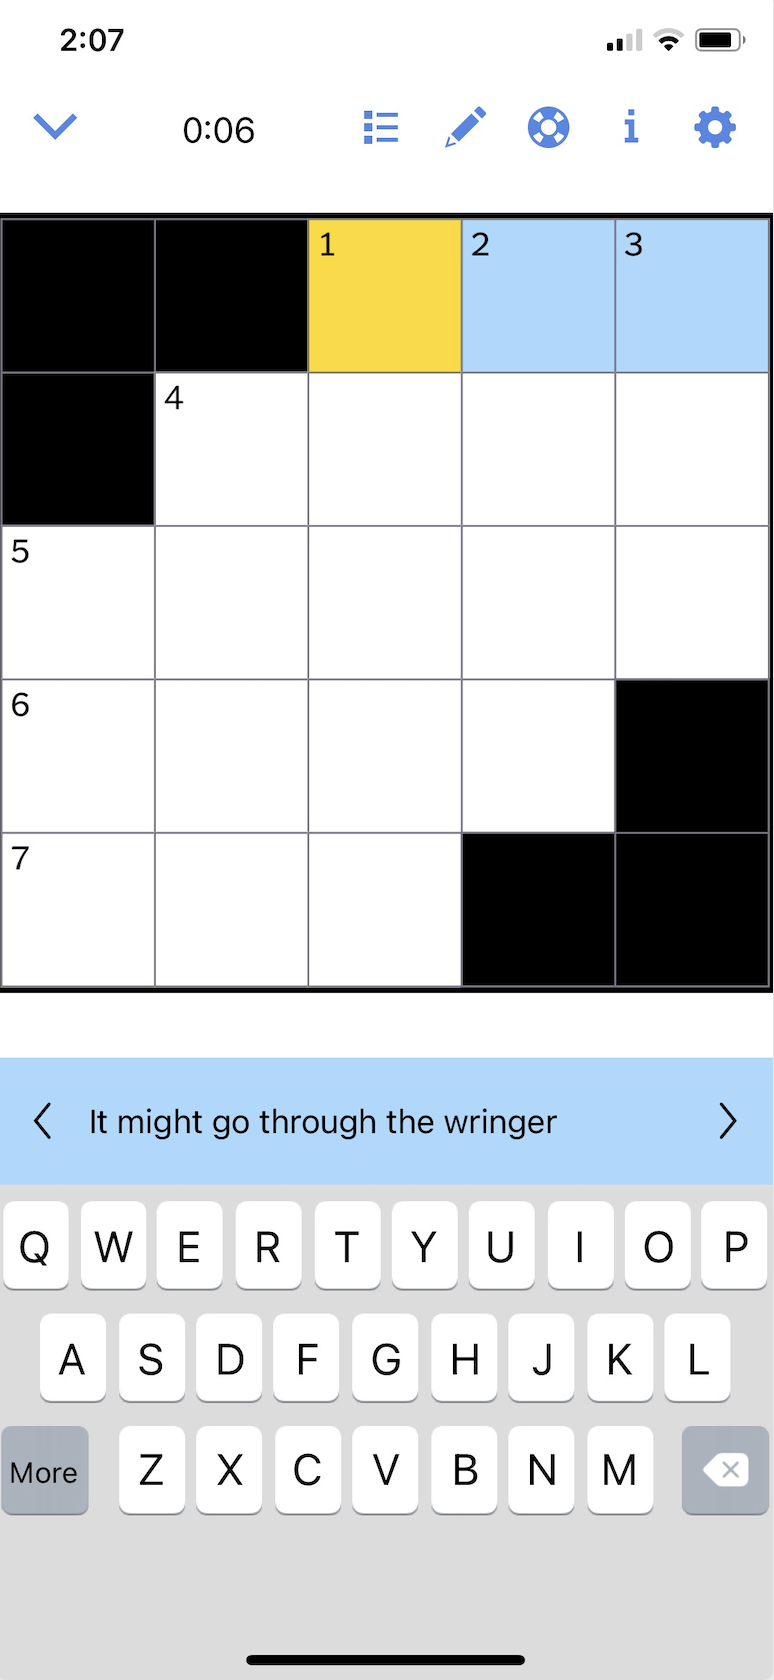 Image of The New York Times Crossword App